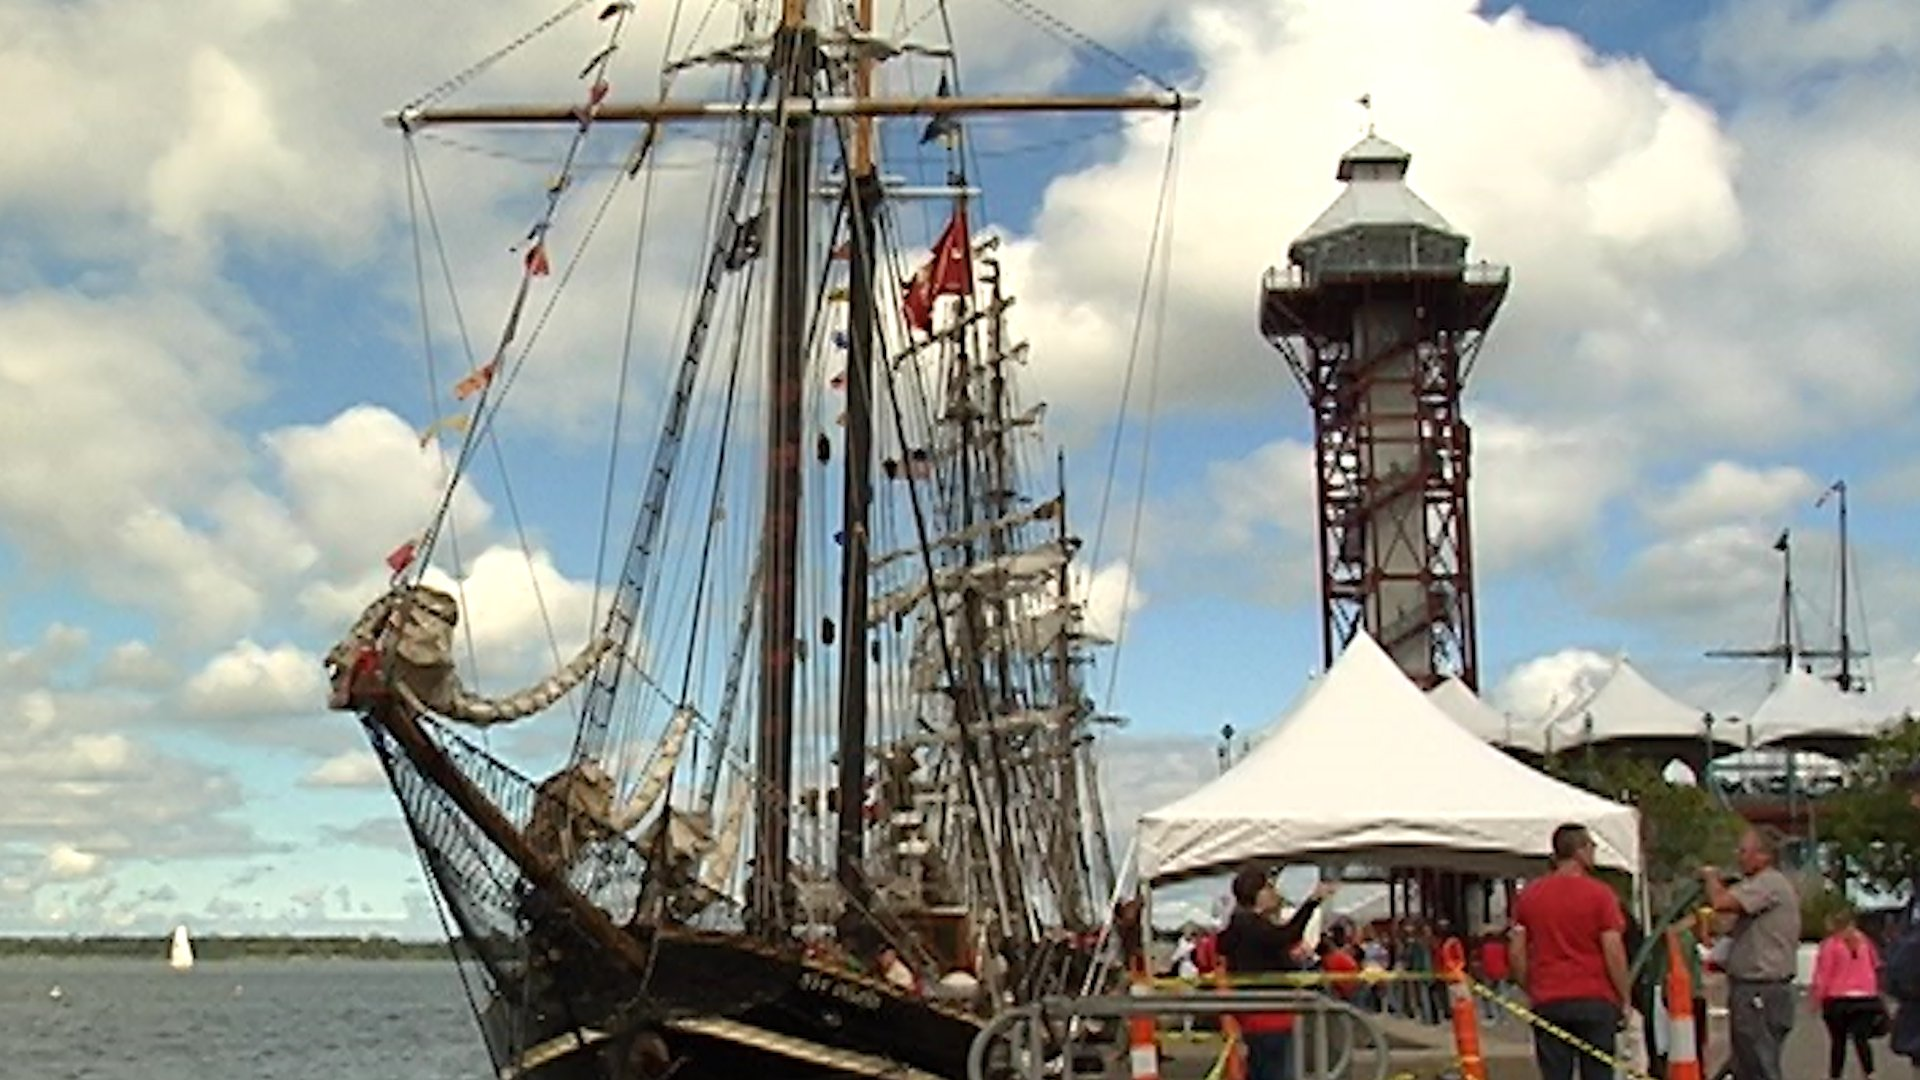 Planning To Keep Tall Ships Festival Safe Erie News Now